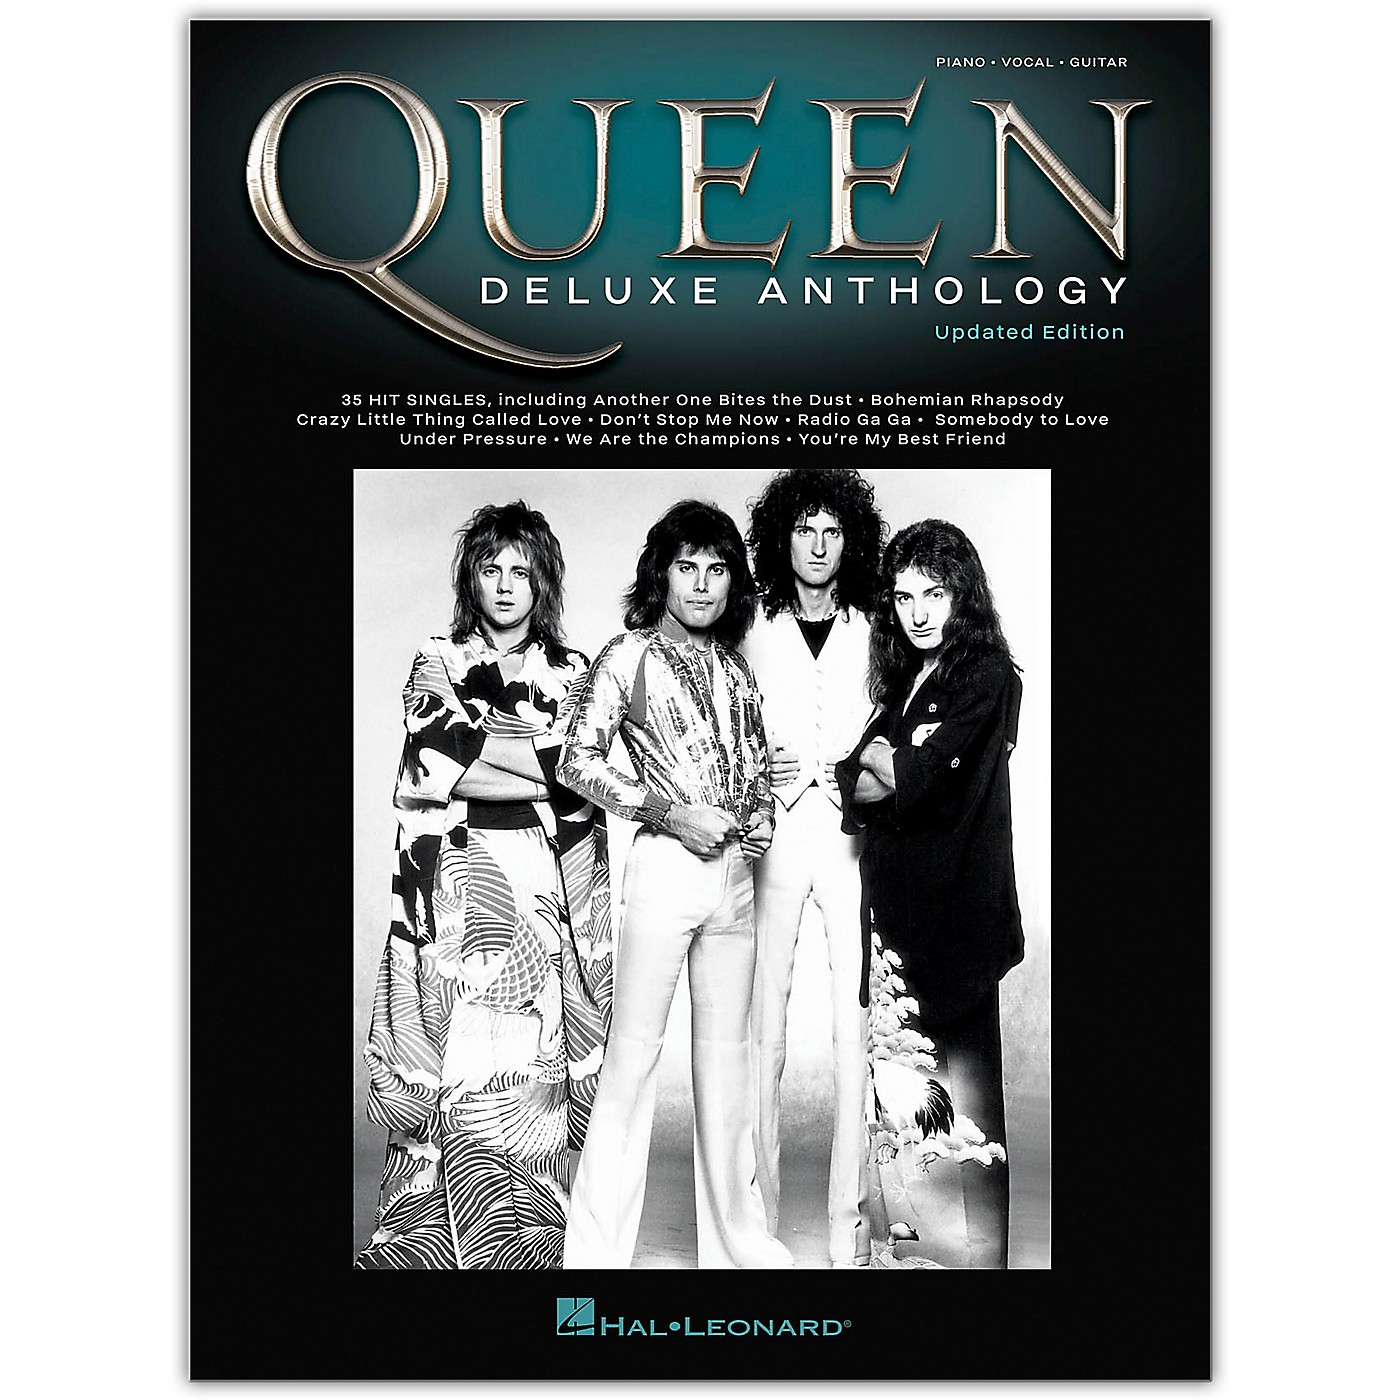 Hal Leonard Queen - Deluxe Anthology (Updated Edition) Piano/Vocal/Guitar Songbook thumbnail